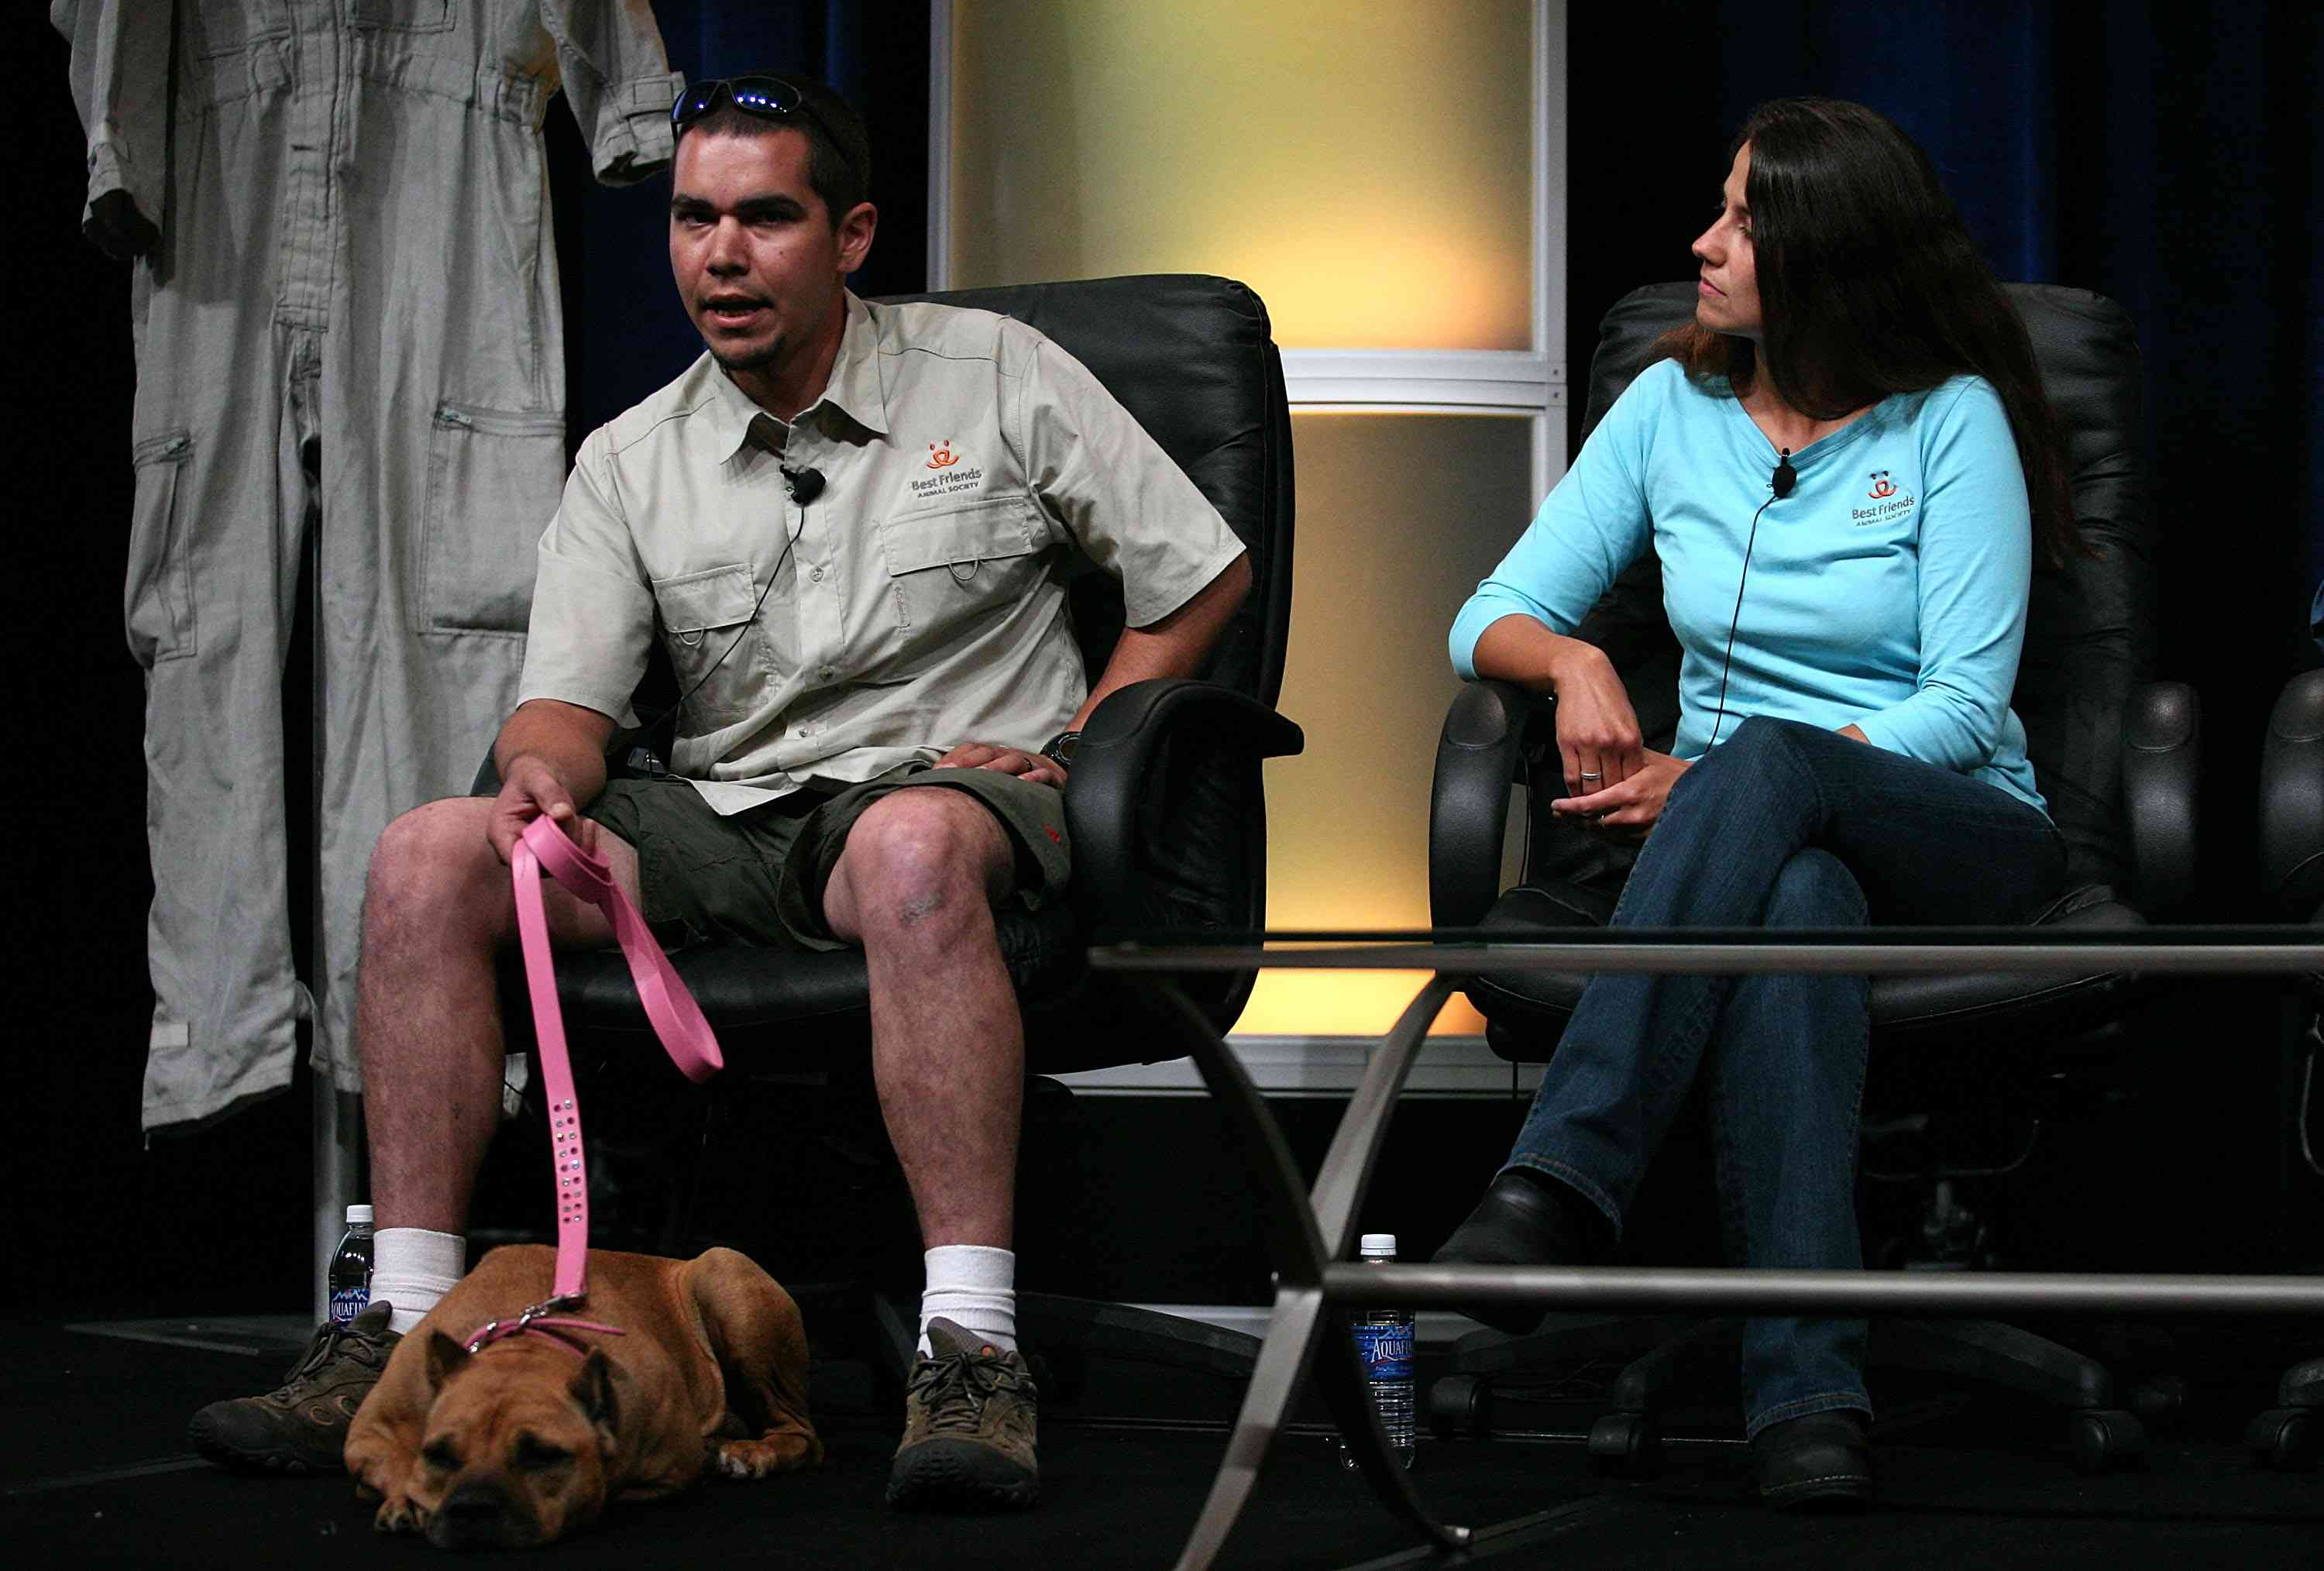 John Garcia of Best Friends Animal Society with a rehabilitated Michael Vick dog named Georgia.